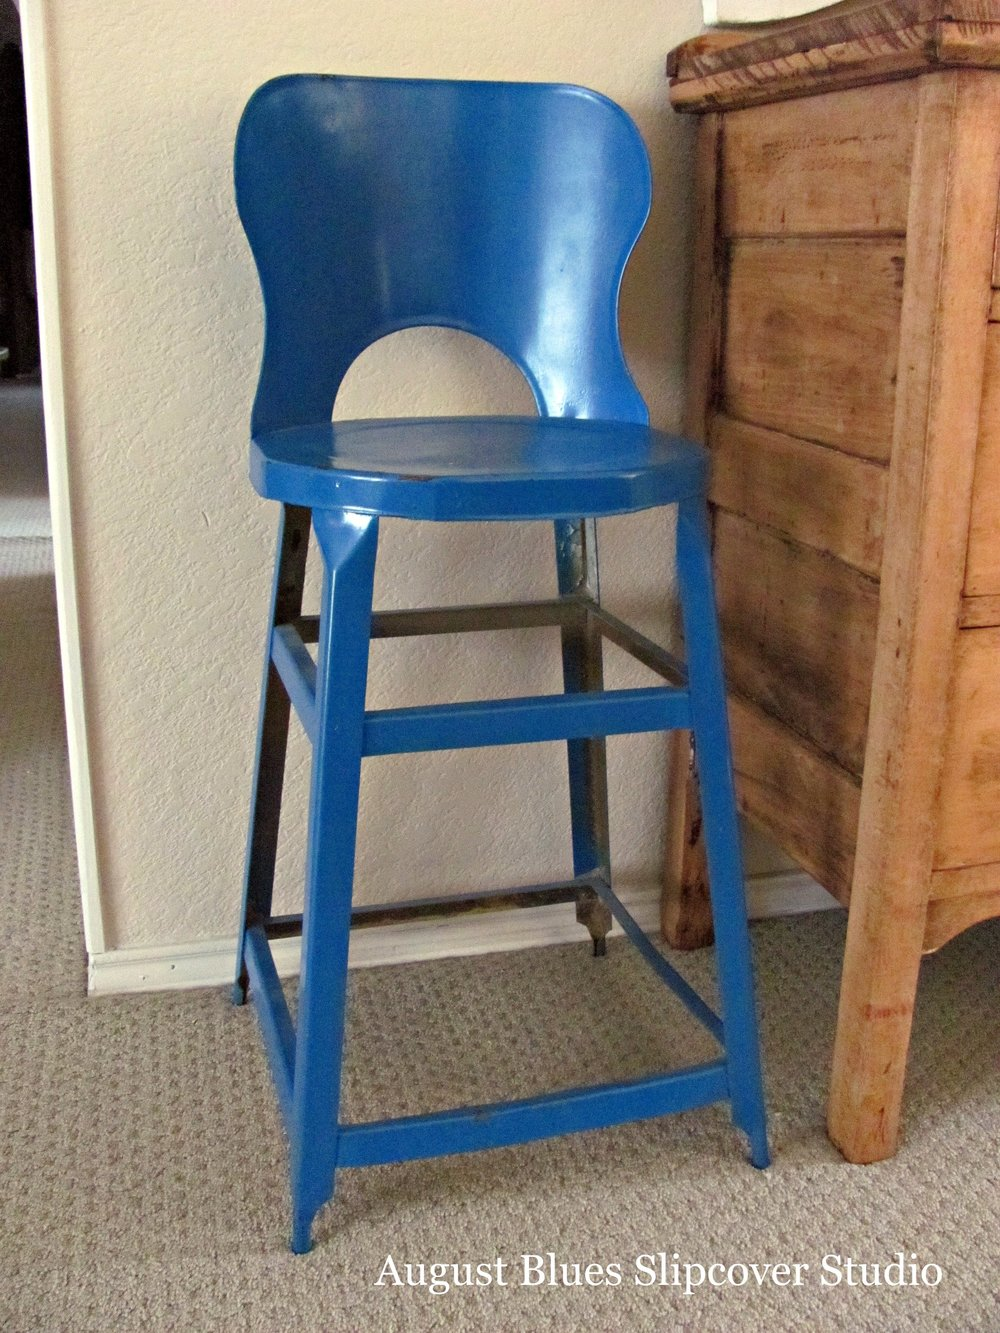 August Blues - Vintage Stool